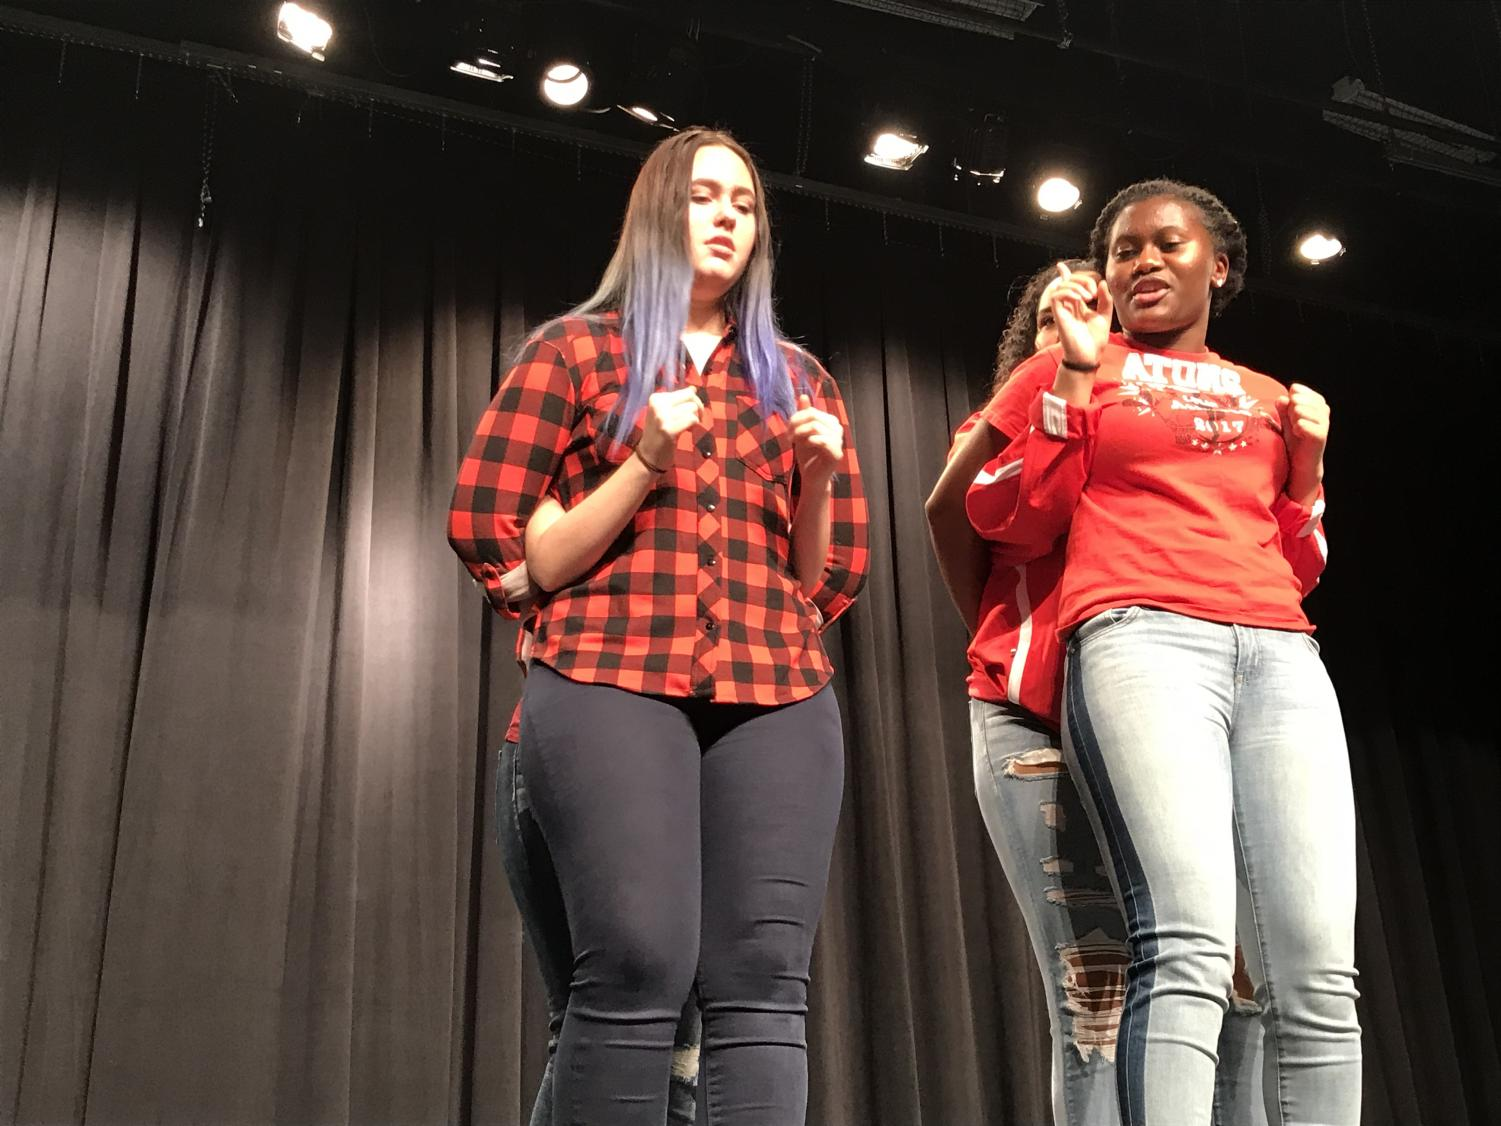 Junior Emily Trachsel is playing the arms of Junior Ioana Marin and Sophomore Makayla Collins is playing the arms of Sophomore Ave Clyburn during their improv game of arms.